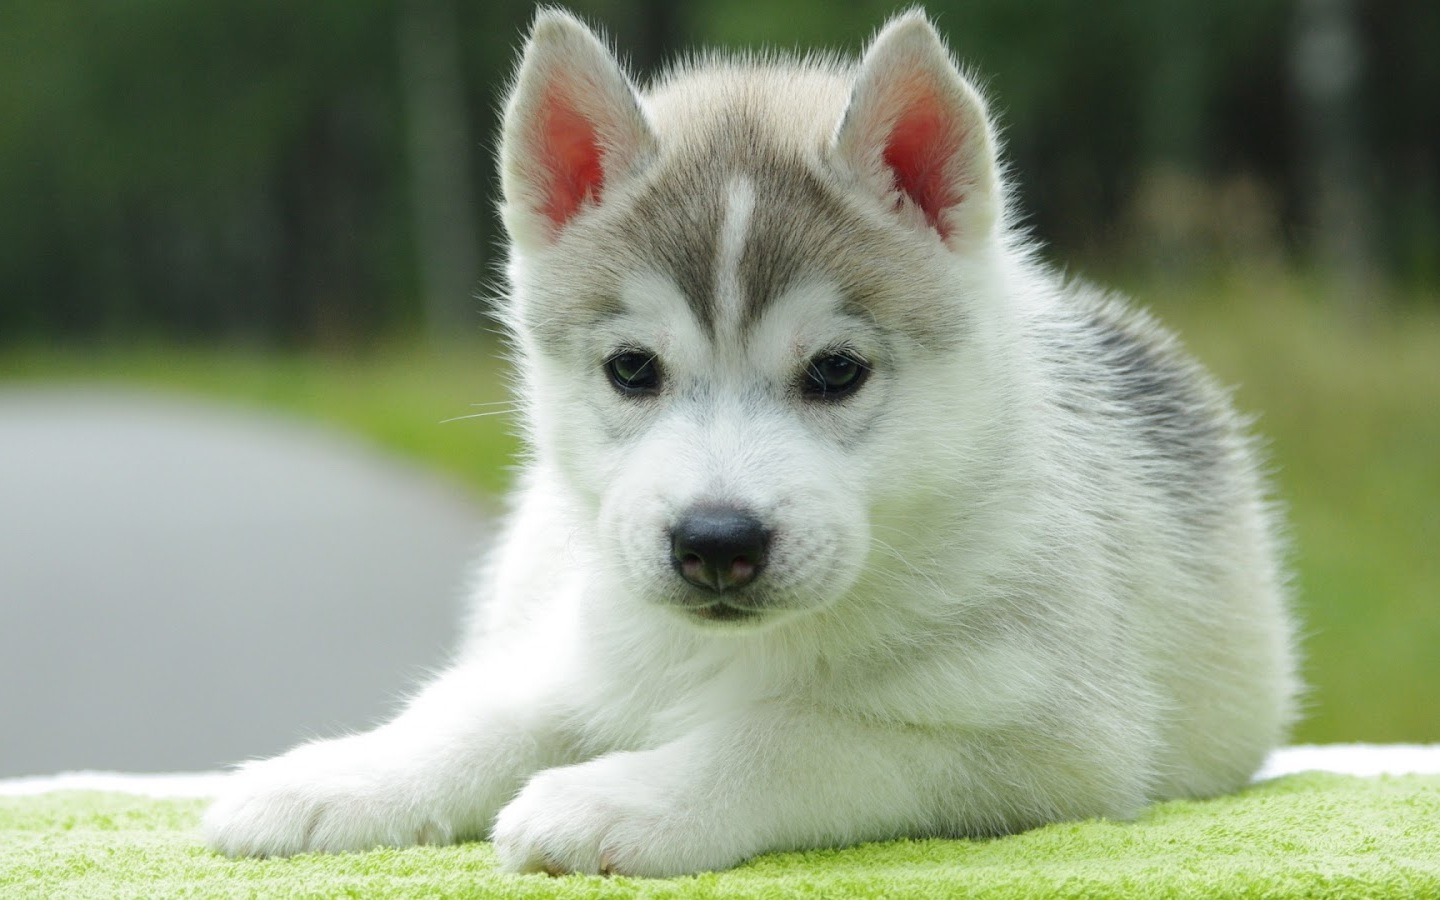 Previous Image Go back to Cute Puppy Wallpapers for Desktop Mobile 1440x900